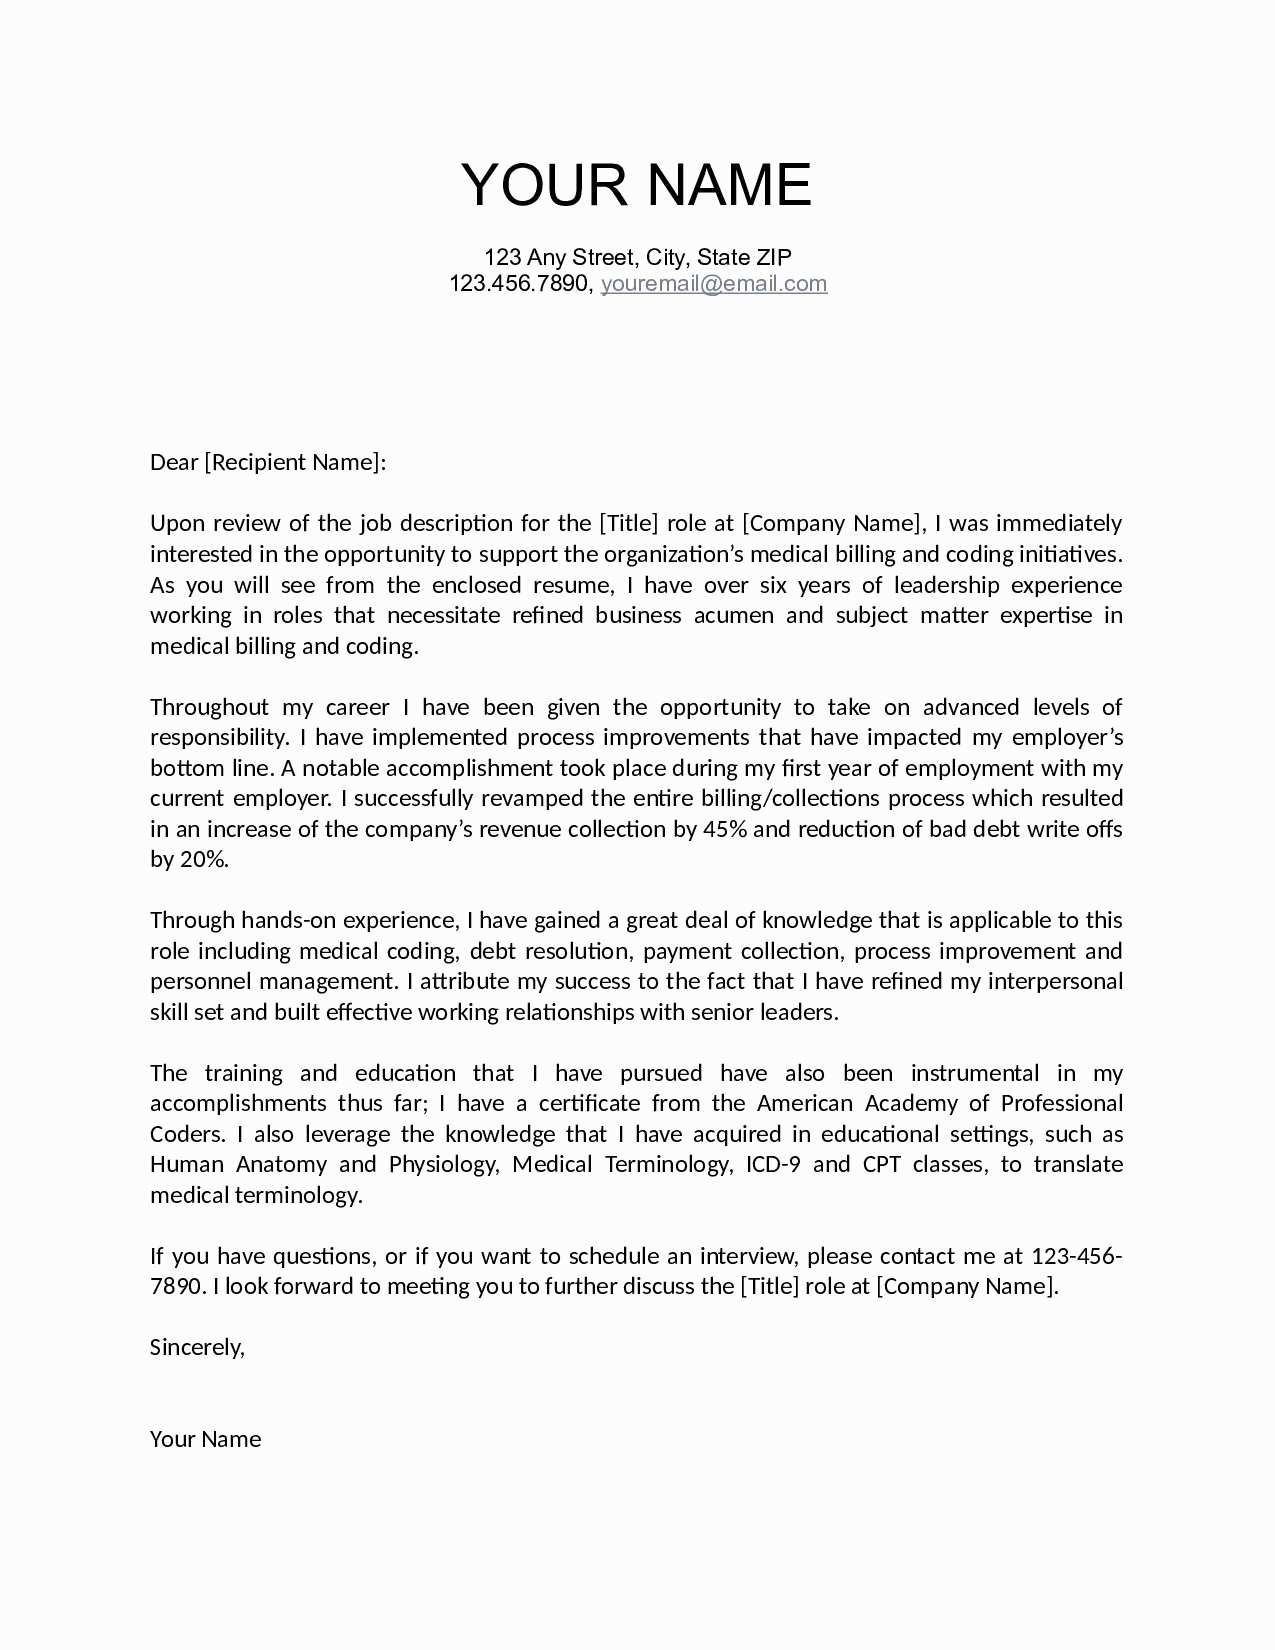 Legal Cover Letter Template - Cover Letter for Oil and Gas Job Save Lovely Job Fer Letter Template